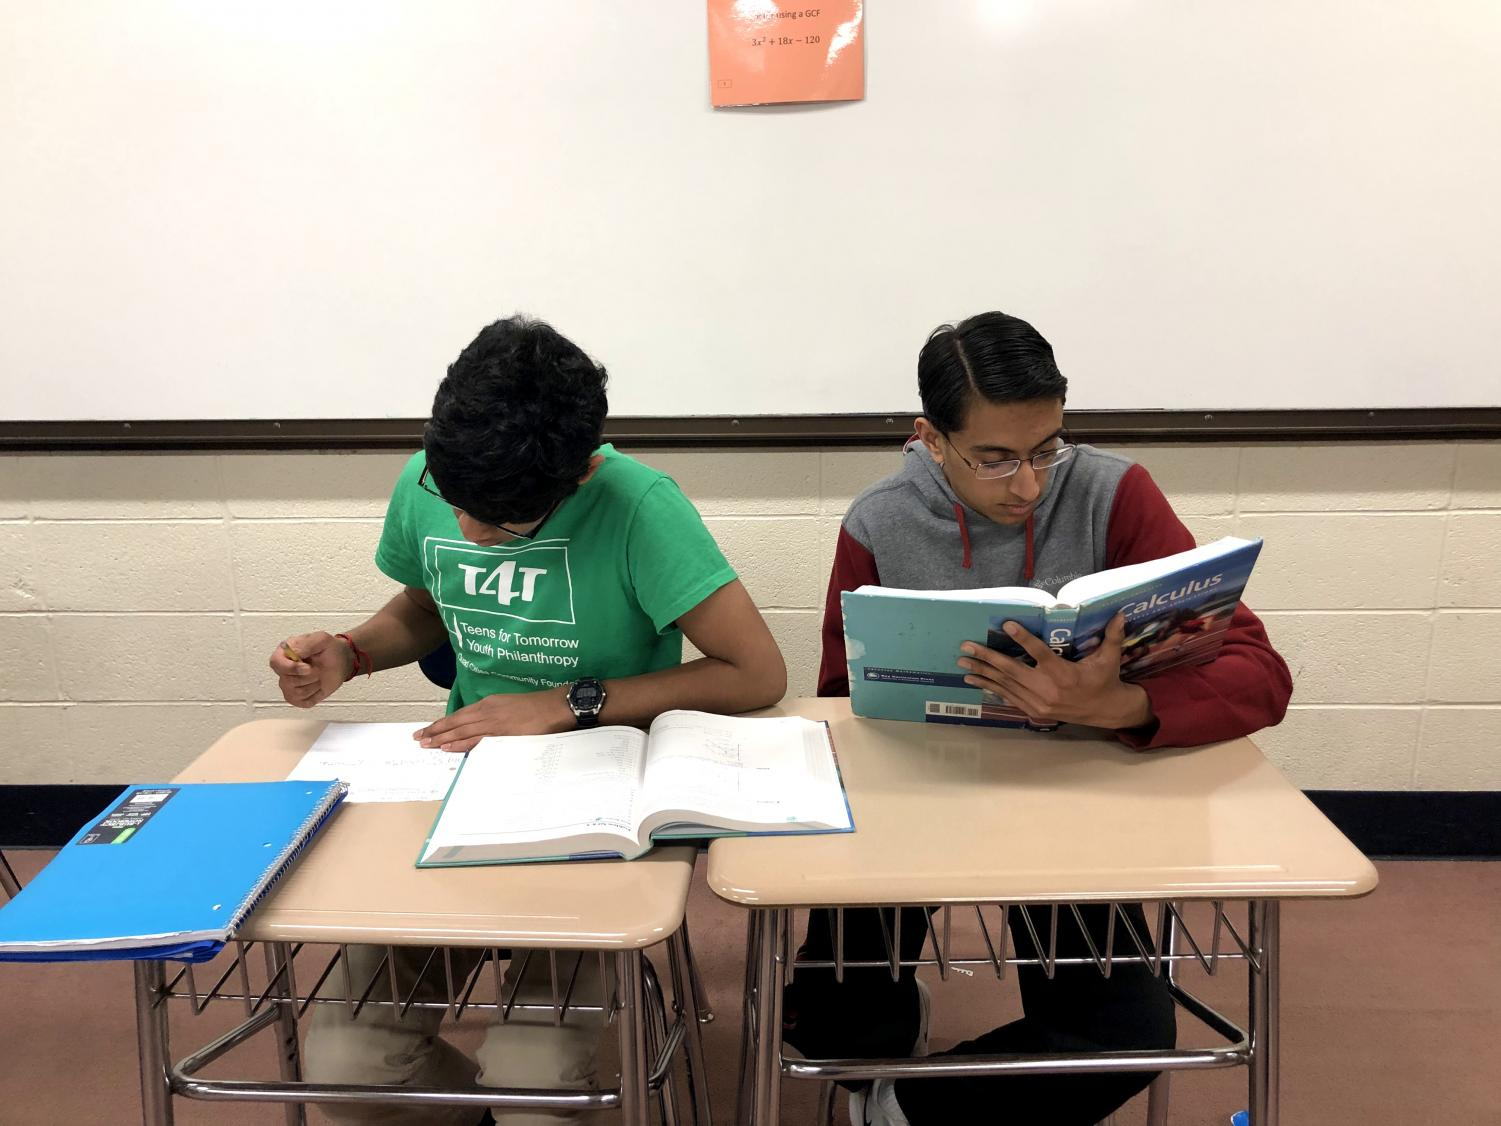 Sujay Marisetty (left) and Aditya Desai (right) are preparing for the next round of their competitions.